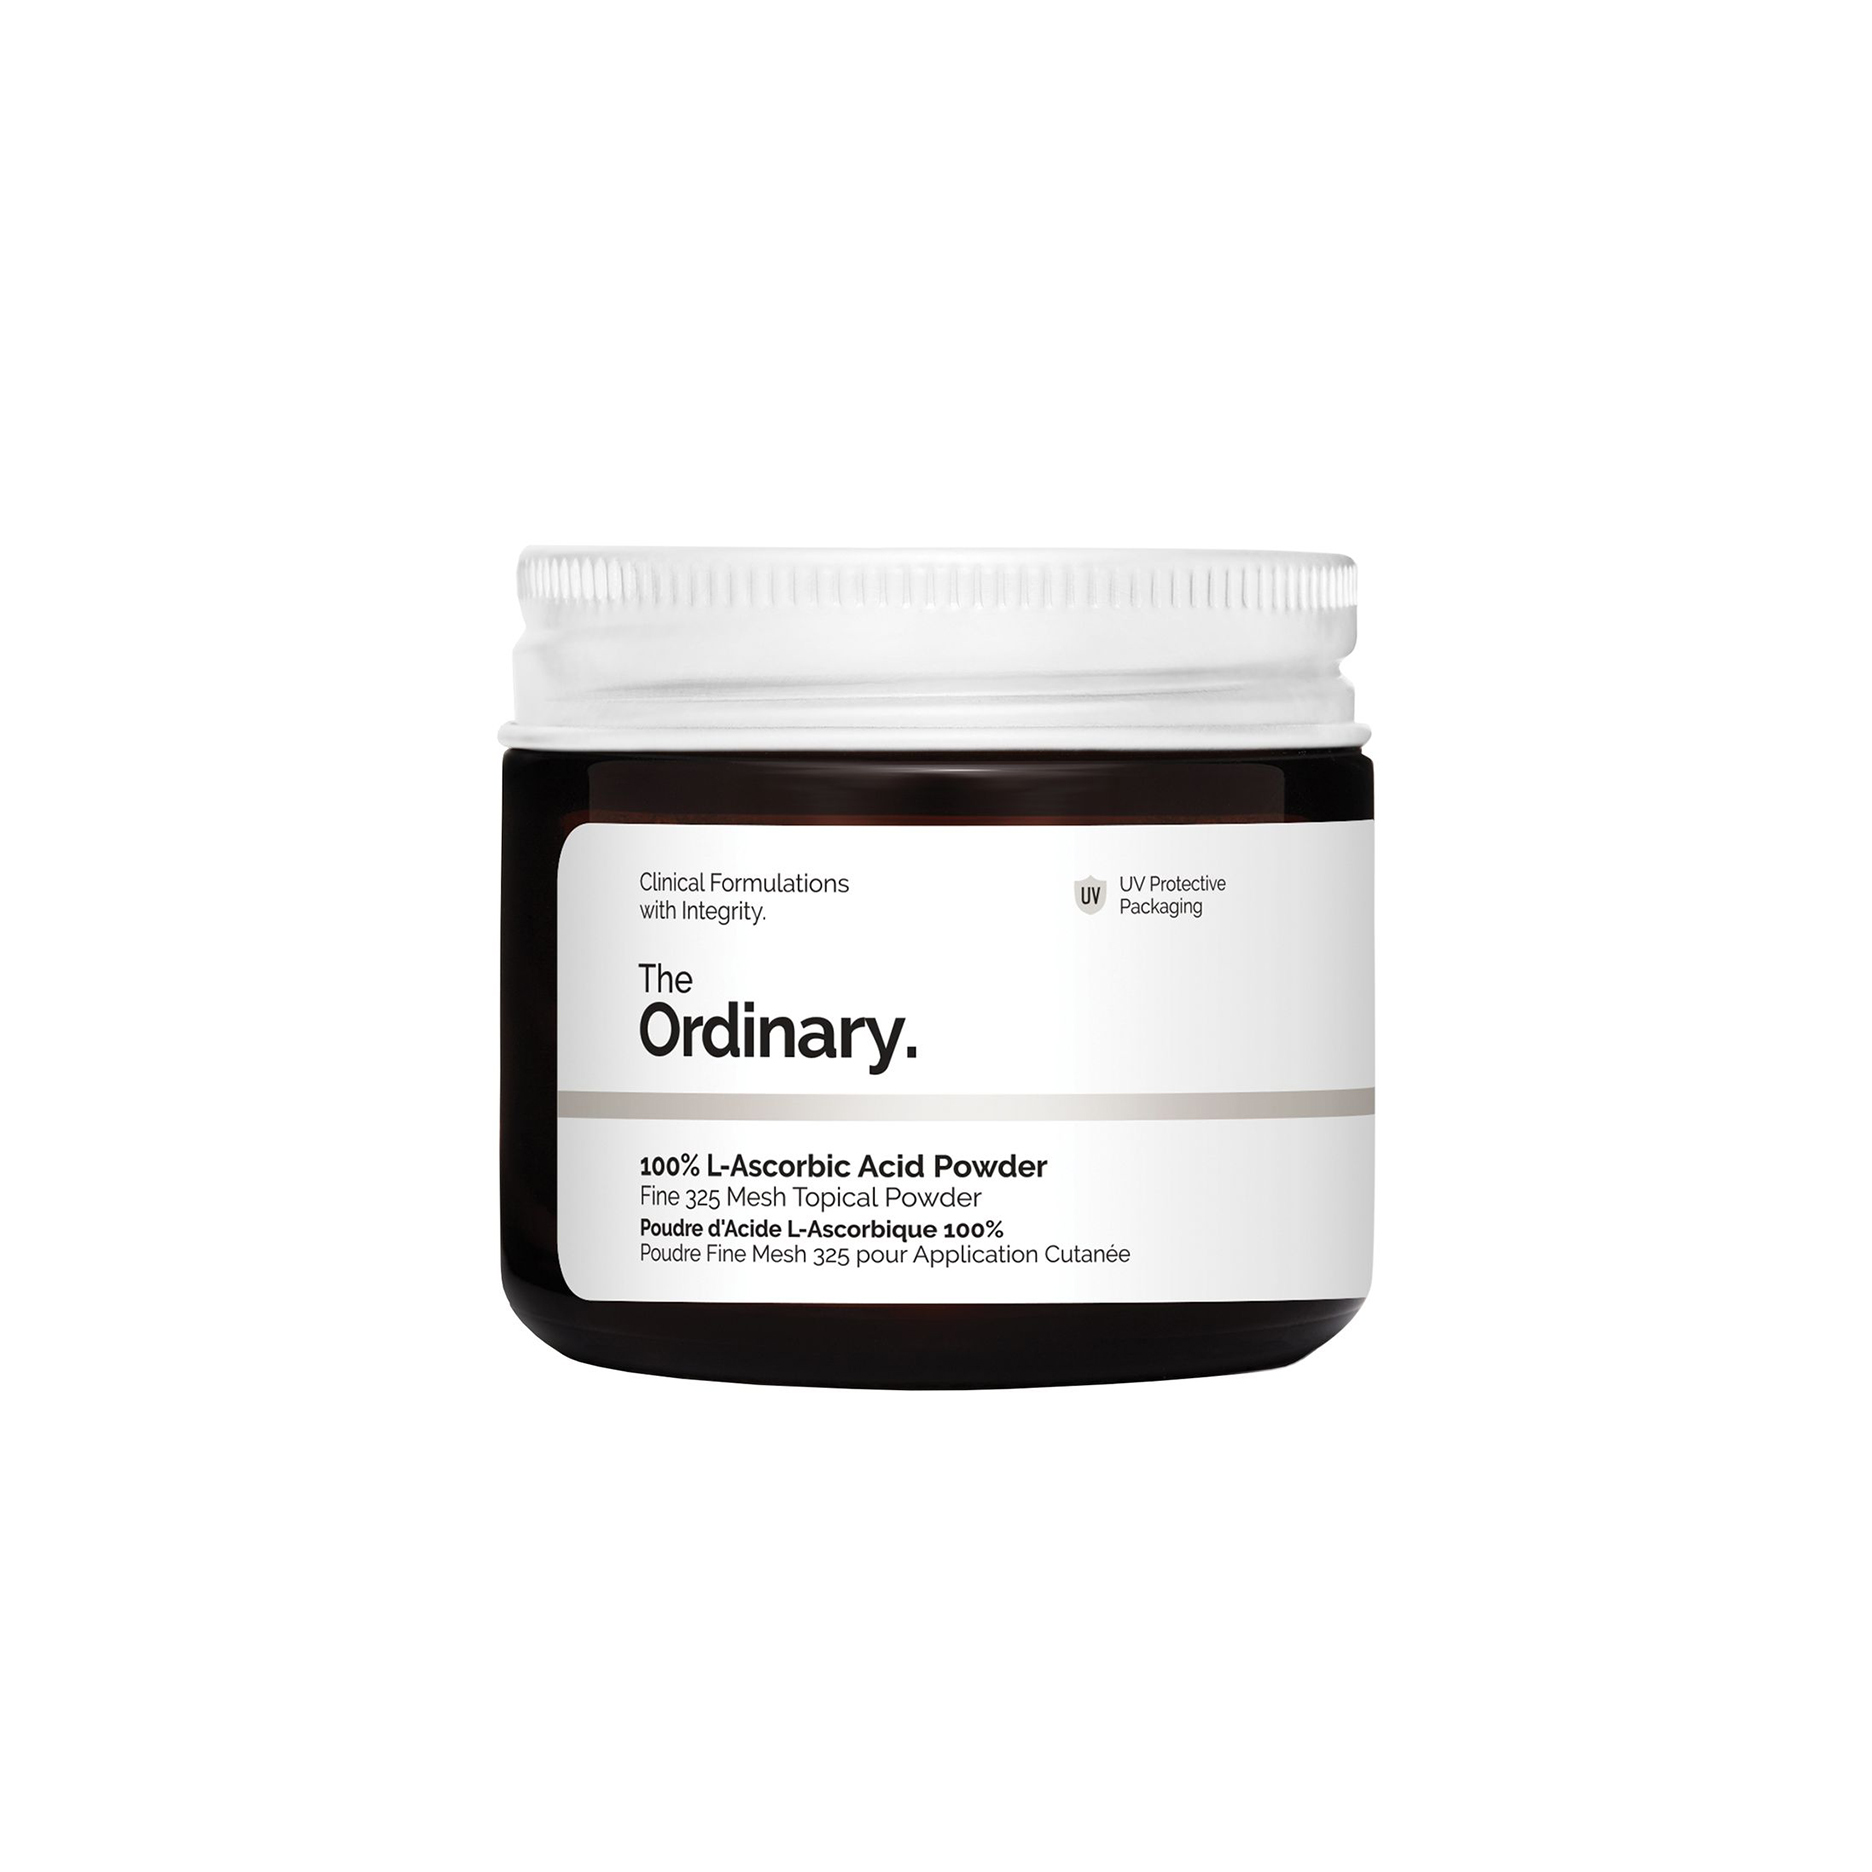 Витамин С в порошке THE ORDINARY 100% L-Ascorbic Acid Powder